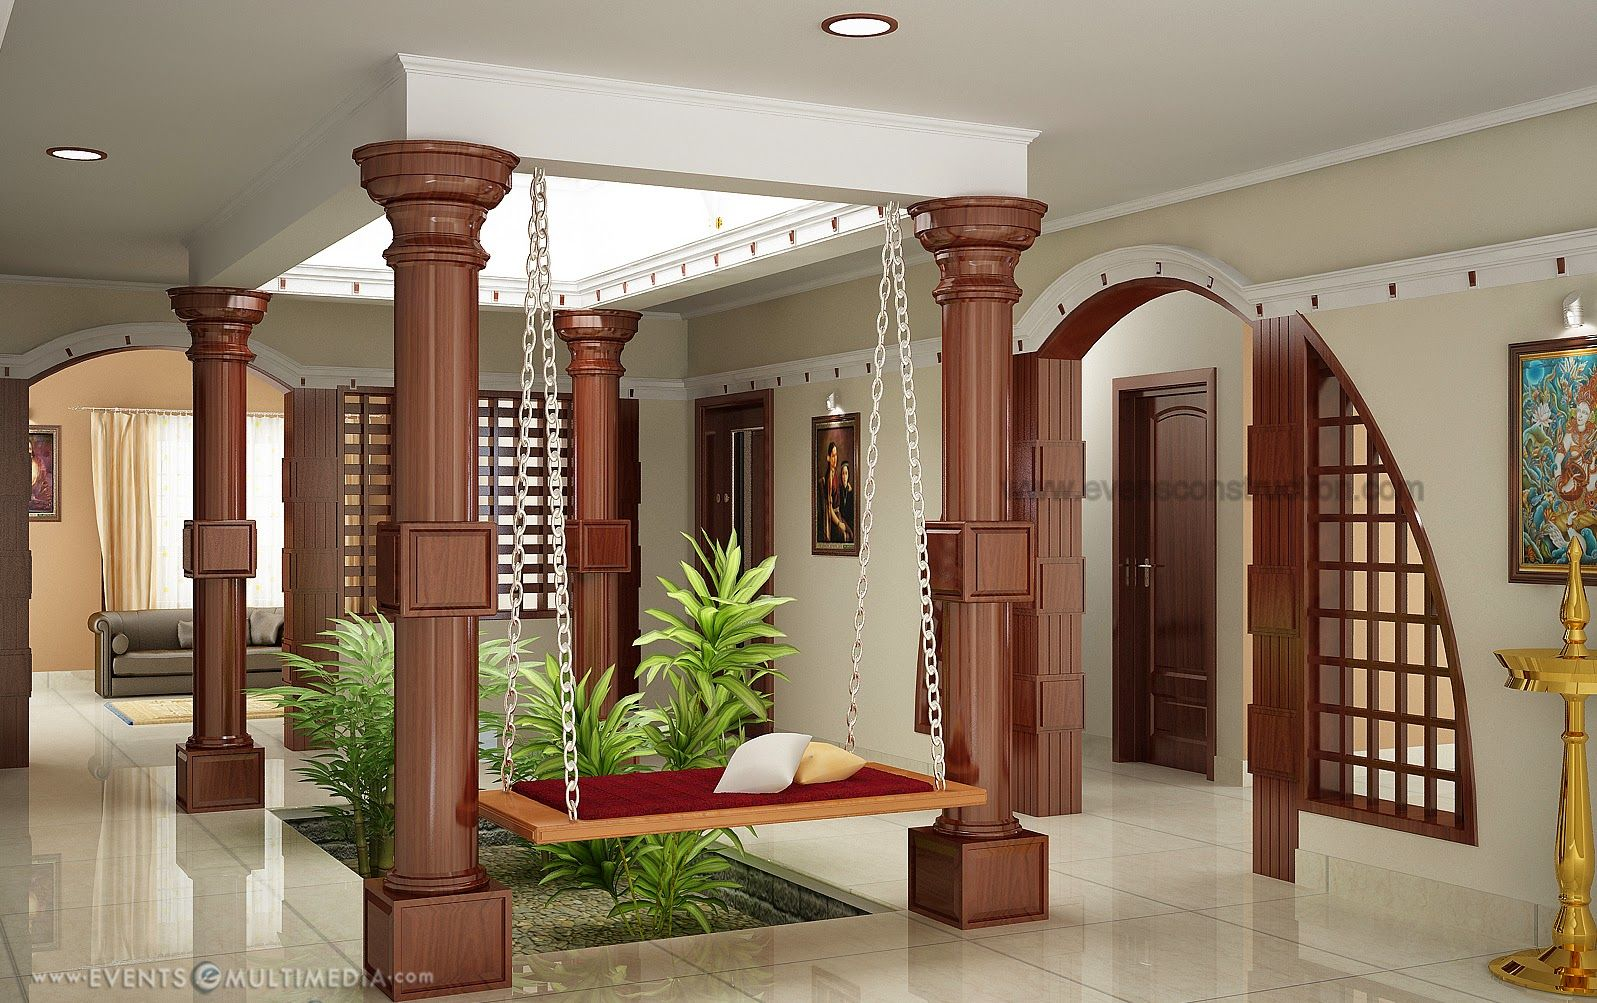 Interior design kerala google search inside and for Kerala house interior arch design